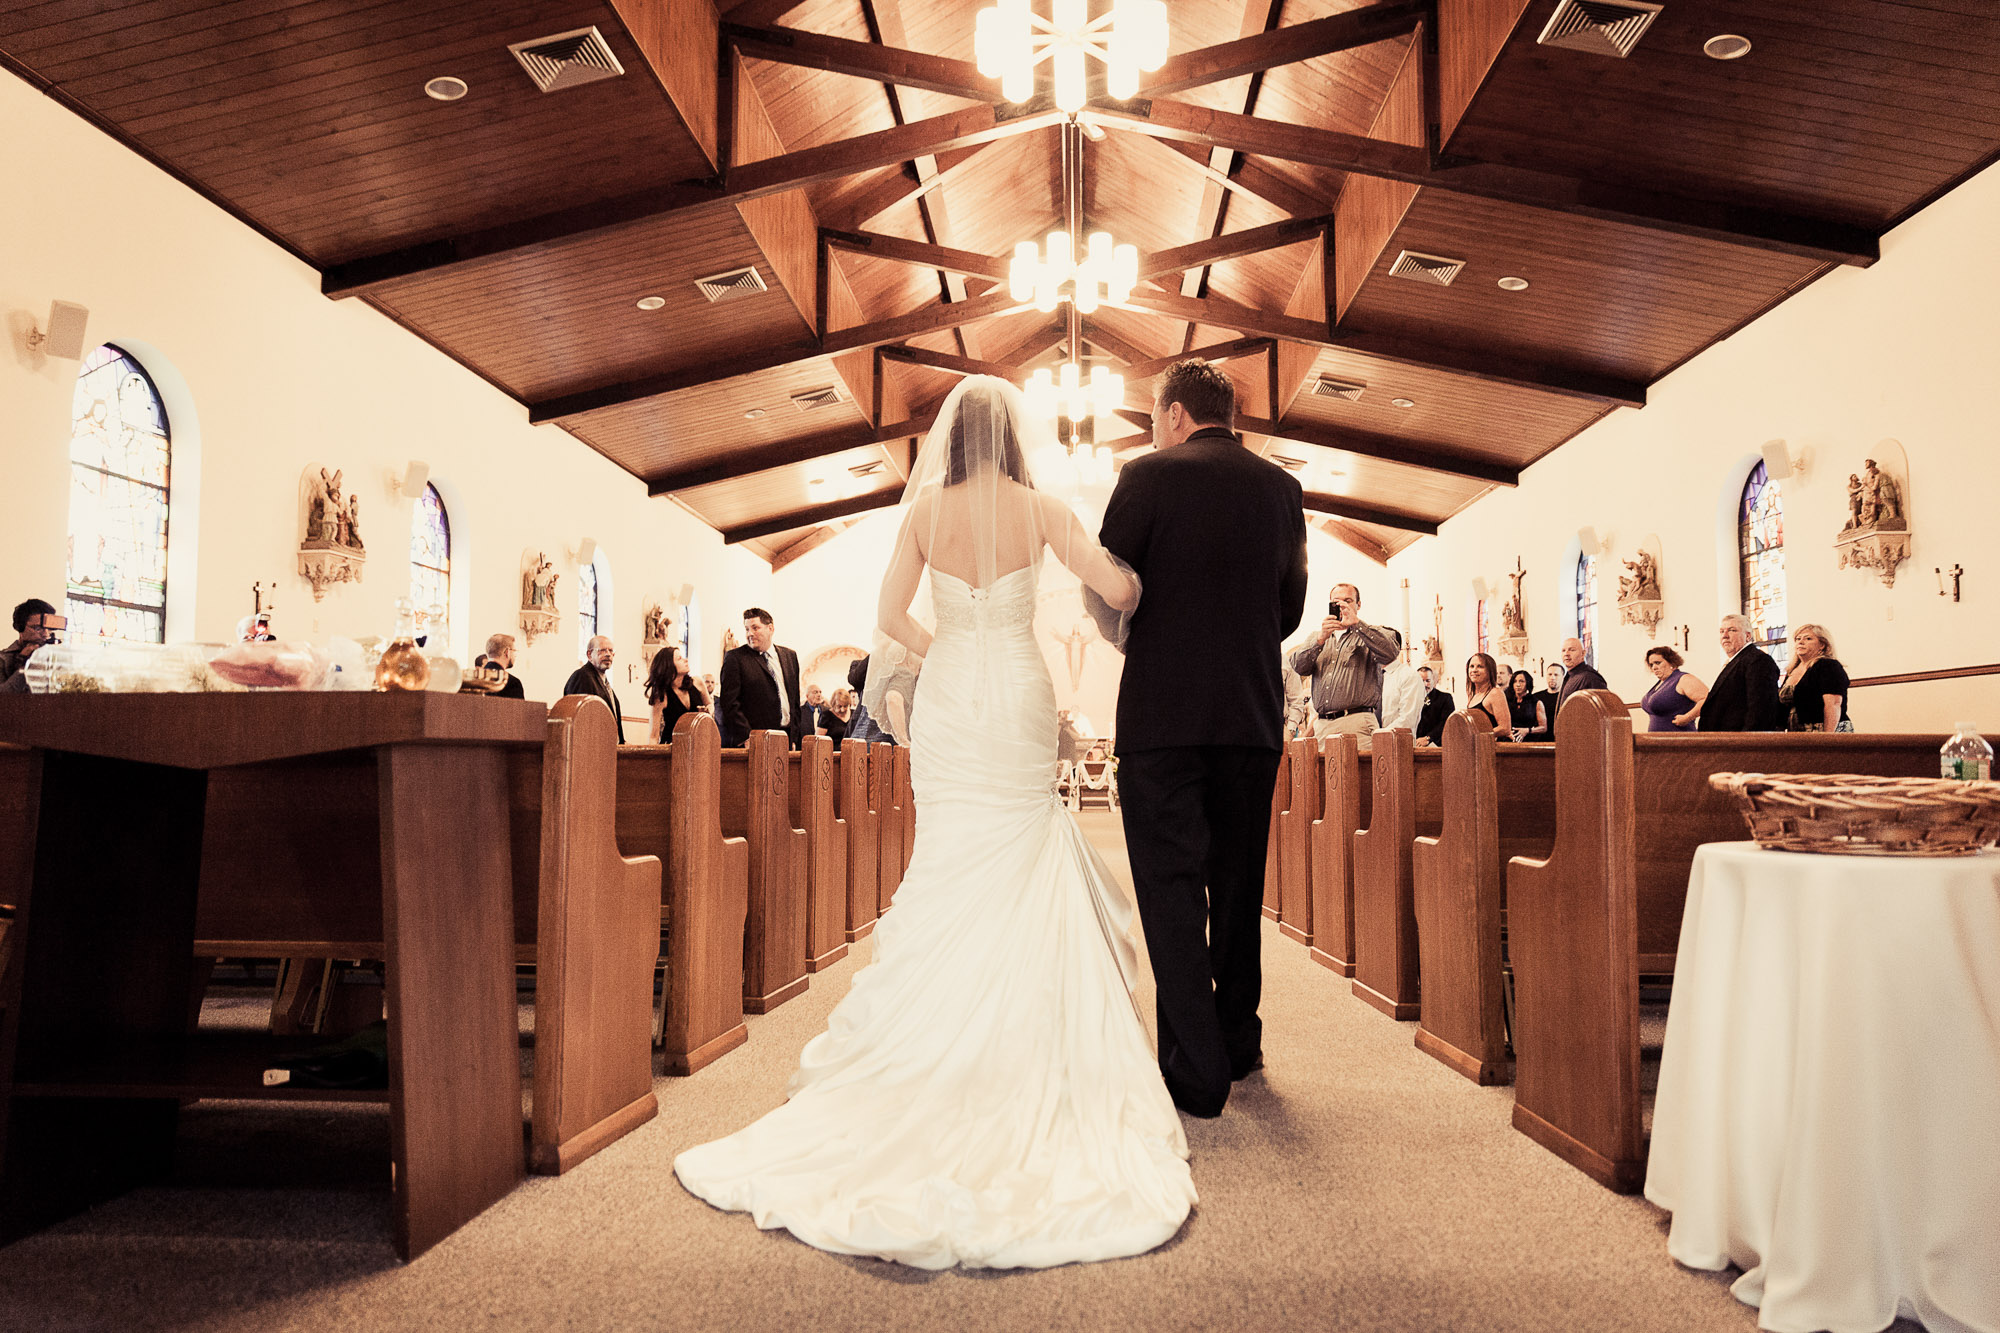 Best Wedding Photographer in Central NJ - Jenna Perfette Photography